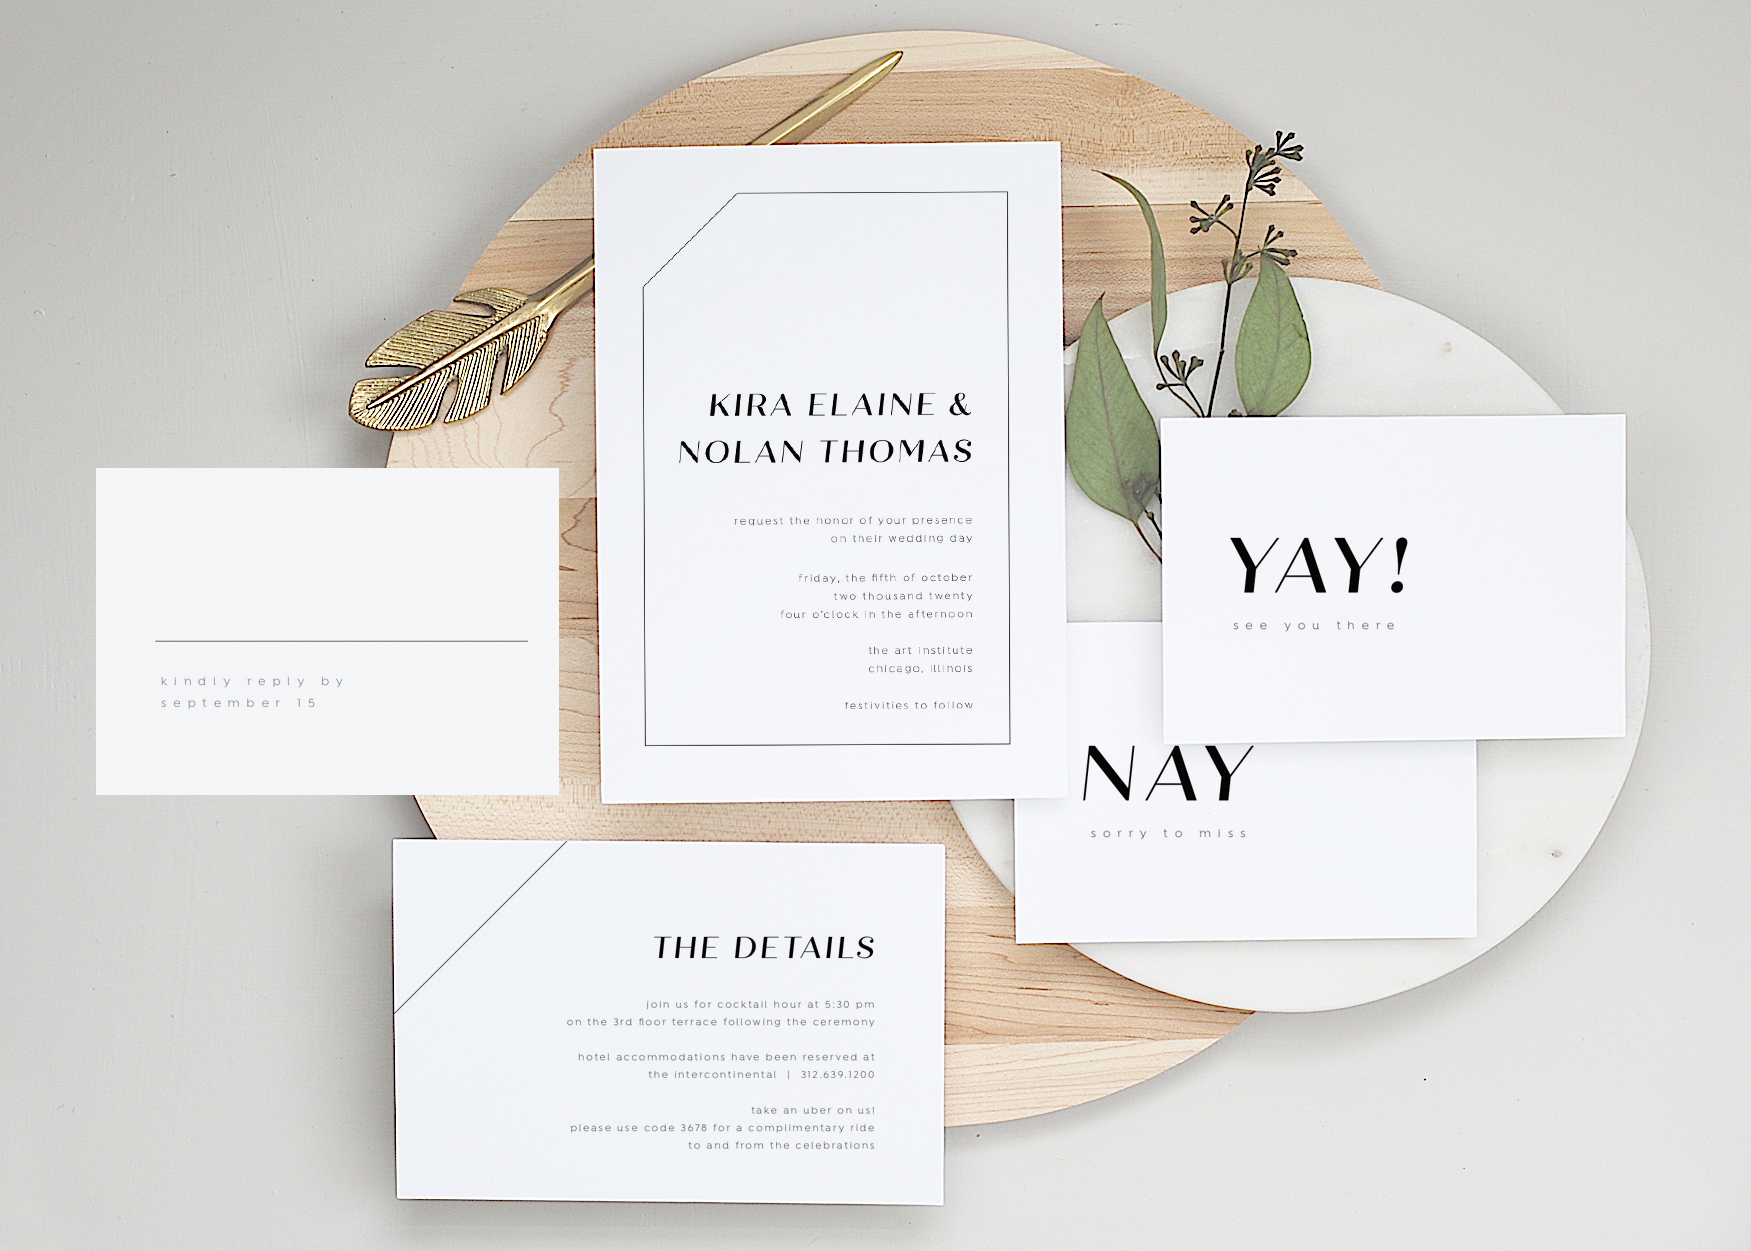 """The Essentials - Looking for a stylish AND budget-friendly invitation option? """"The Essentials"""" packages give you everything for a successful invitation assembly line. INCLUDING envelope addressing and complimentary shipping. All you have to do is assemble, pop on postage and drop them at in the mail!"""